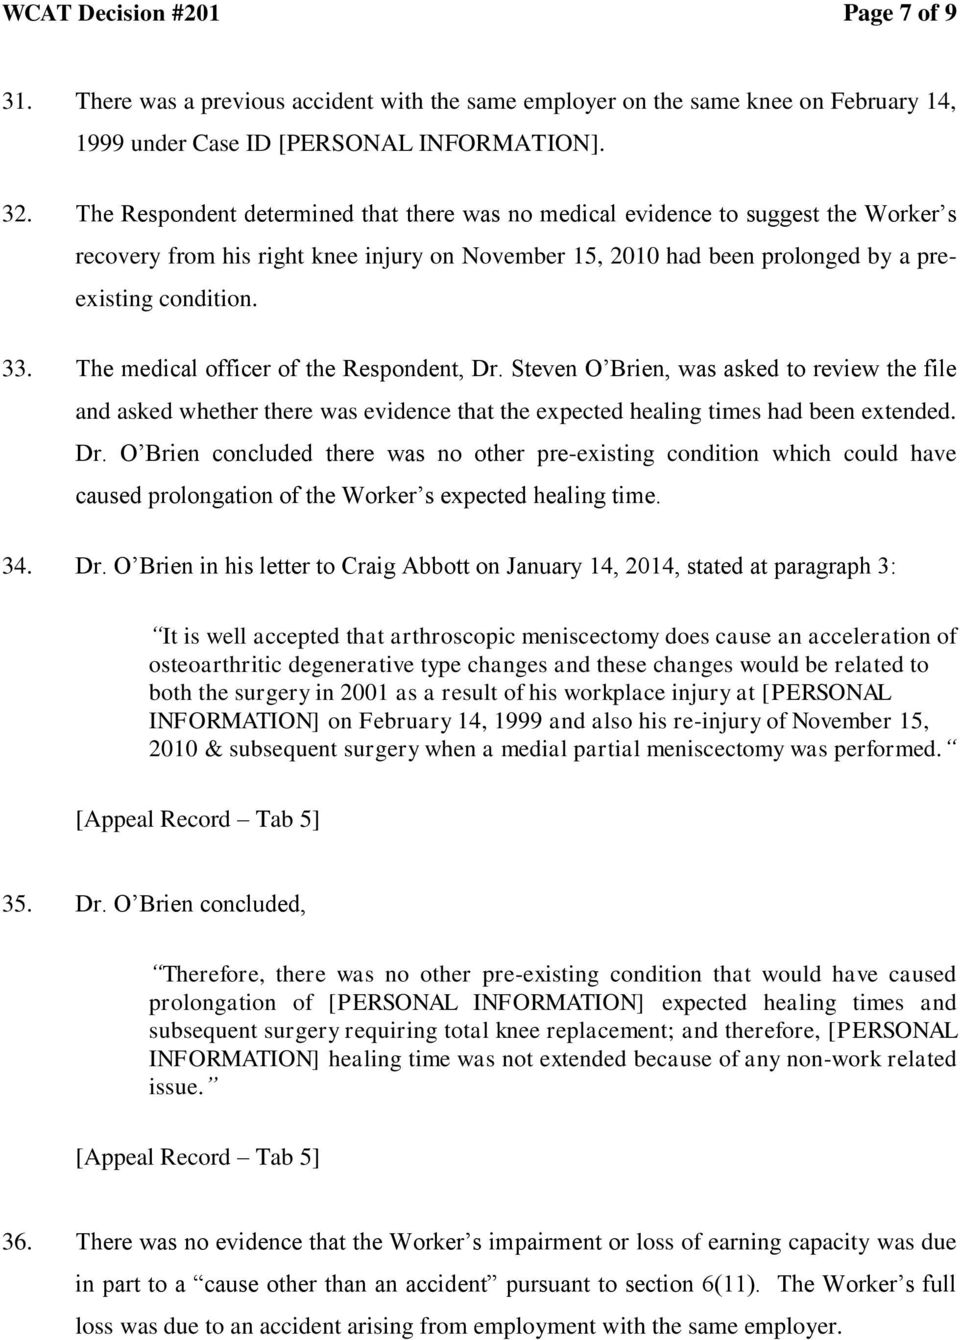 The medical officer of the Respondent, Dr. Steven O Brien, was asked to review the file and asked whether there was evidence that the expected healing times had been extended. Dr. O Brien concluded there was no other pre-existing condition which could have caused prolongation of the Worker s expected healing time.